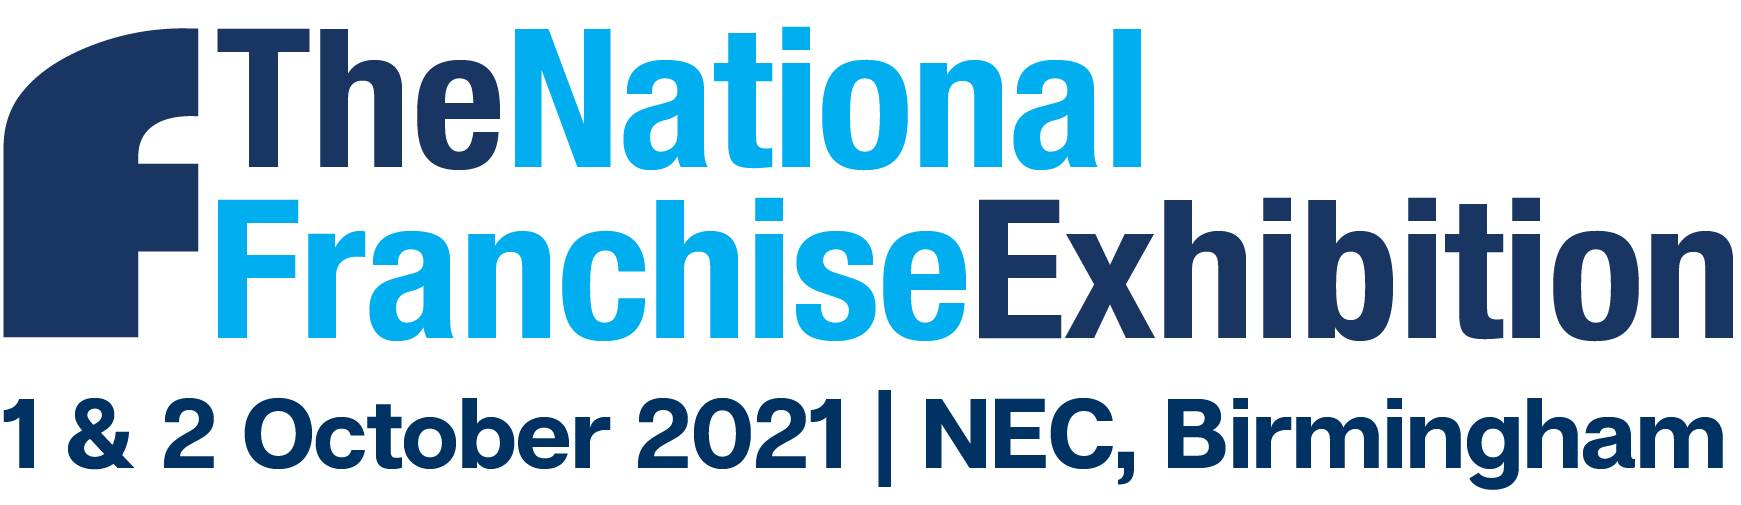 National Franchise Exhibition October 2021